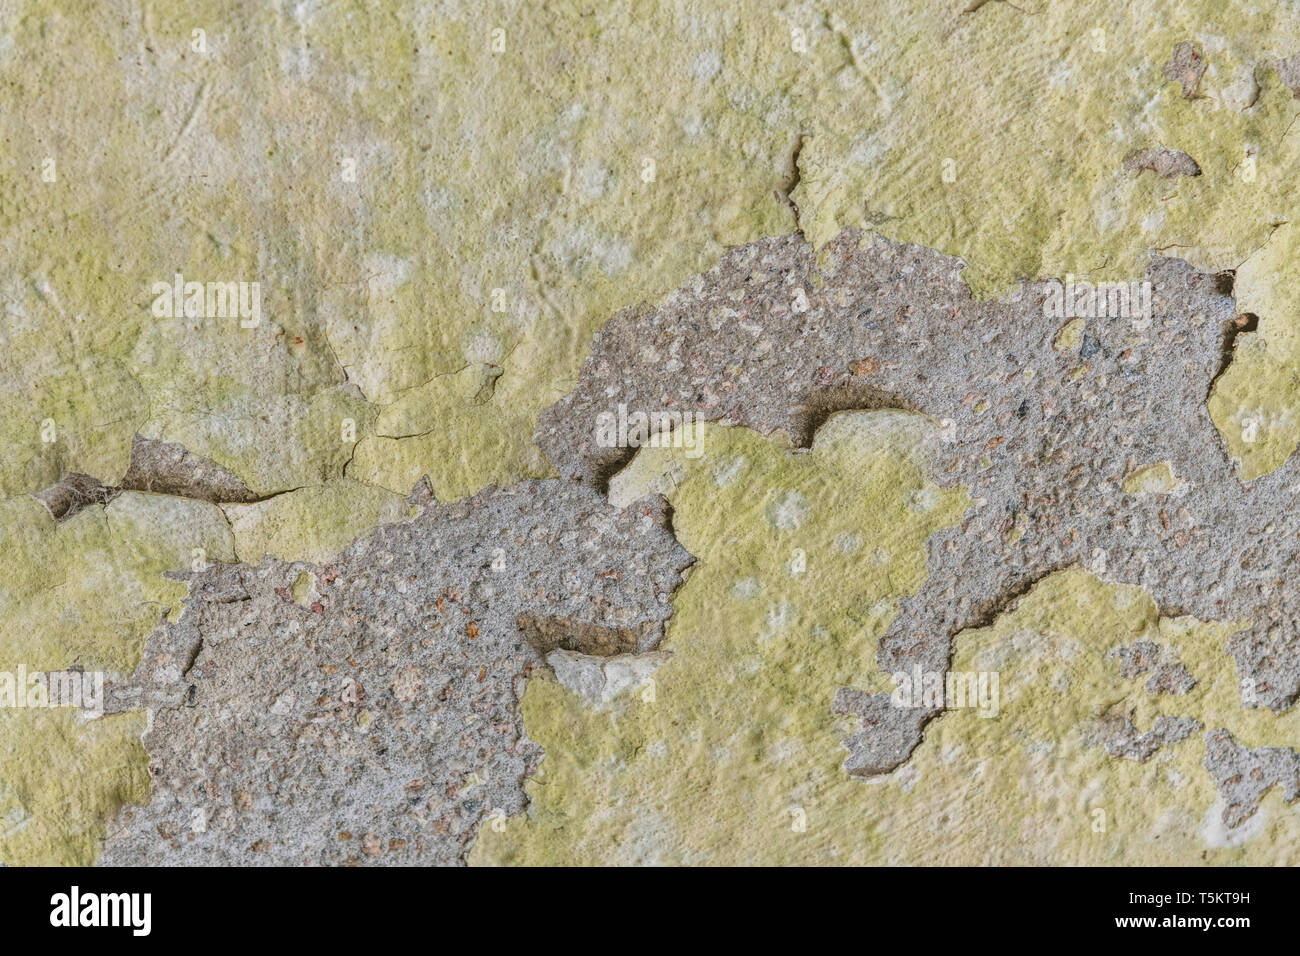 Painted cracked and peeling render coming away from cement background surface. Old paint texture. - Stock Image